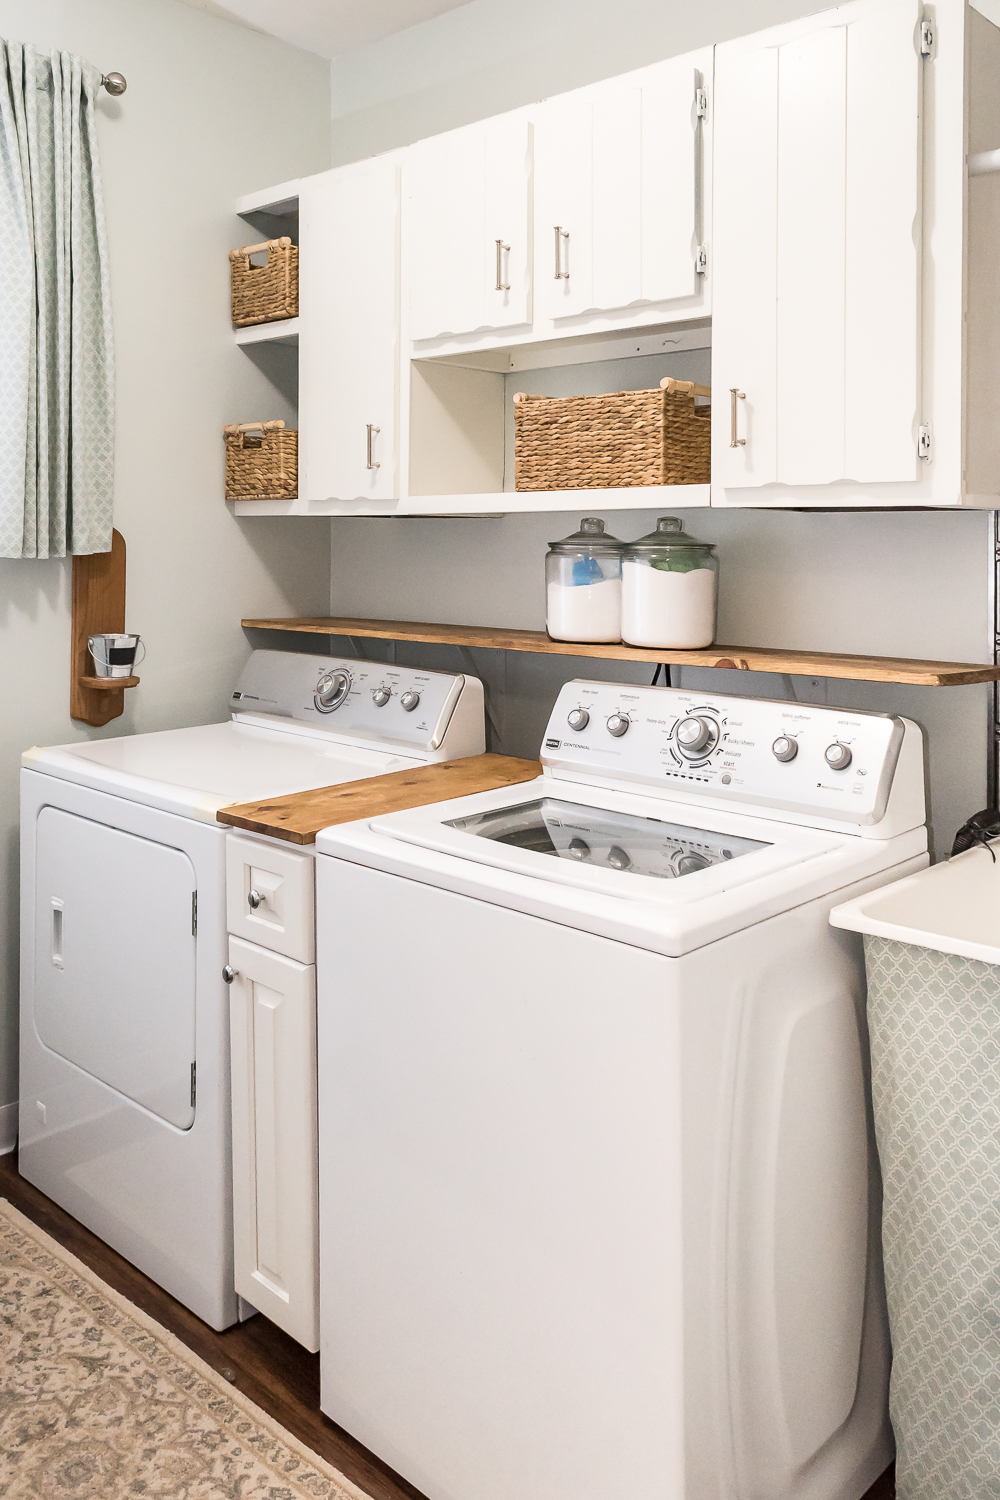 This 300 Laundry Room Makeover Will Make Your Jaw Drop The Weathered Fox